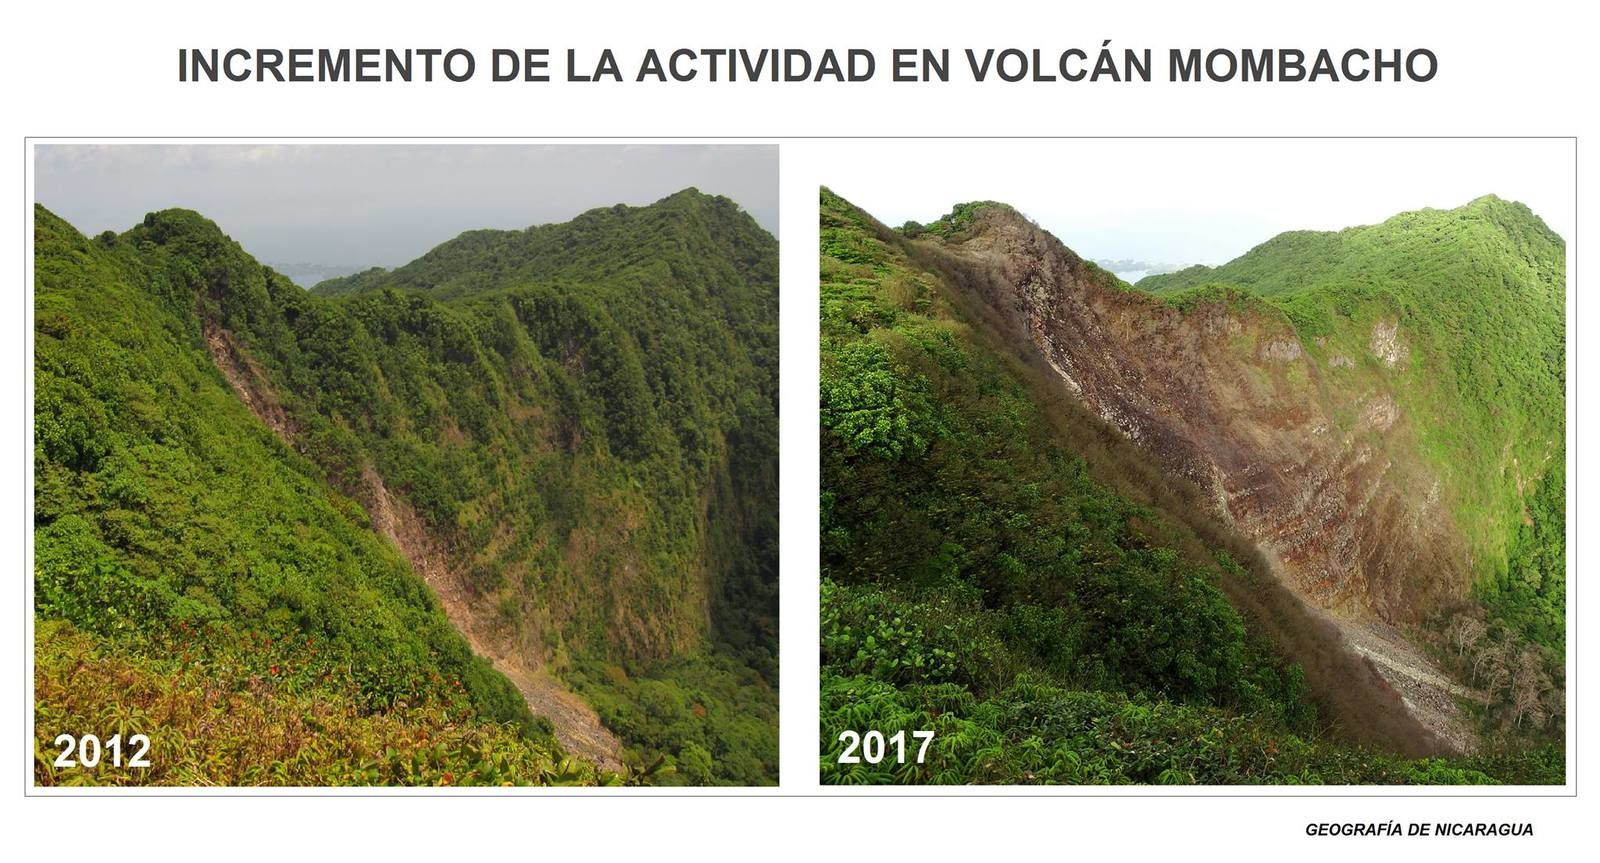 Mombacho - evolution of the vegetation between 2012 and 2017 - photos Geografia of Nicaragua